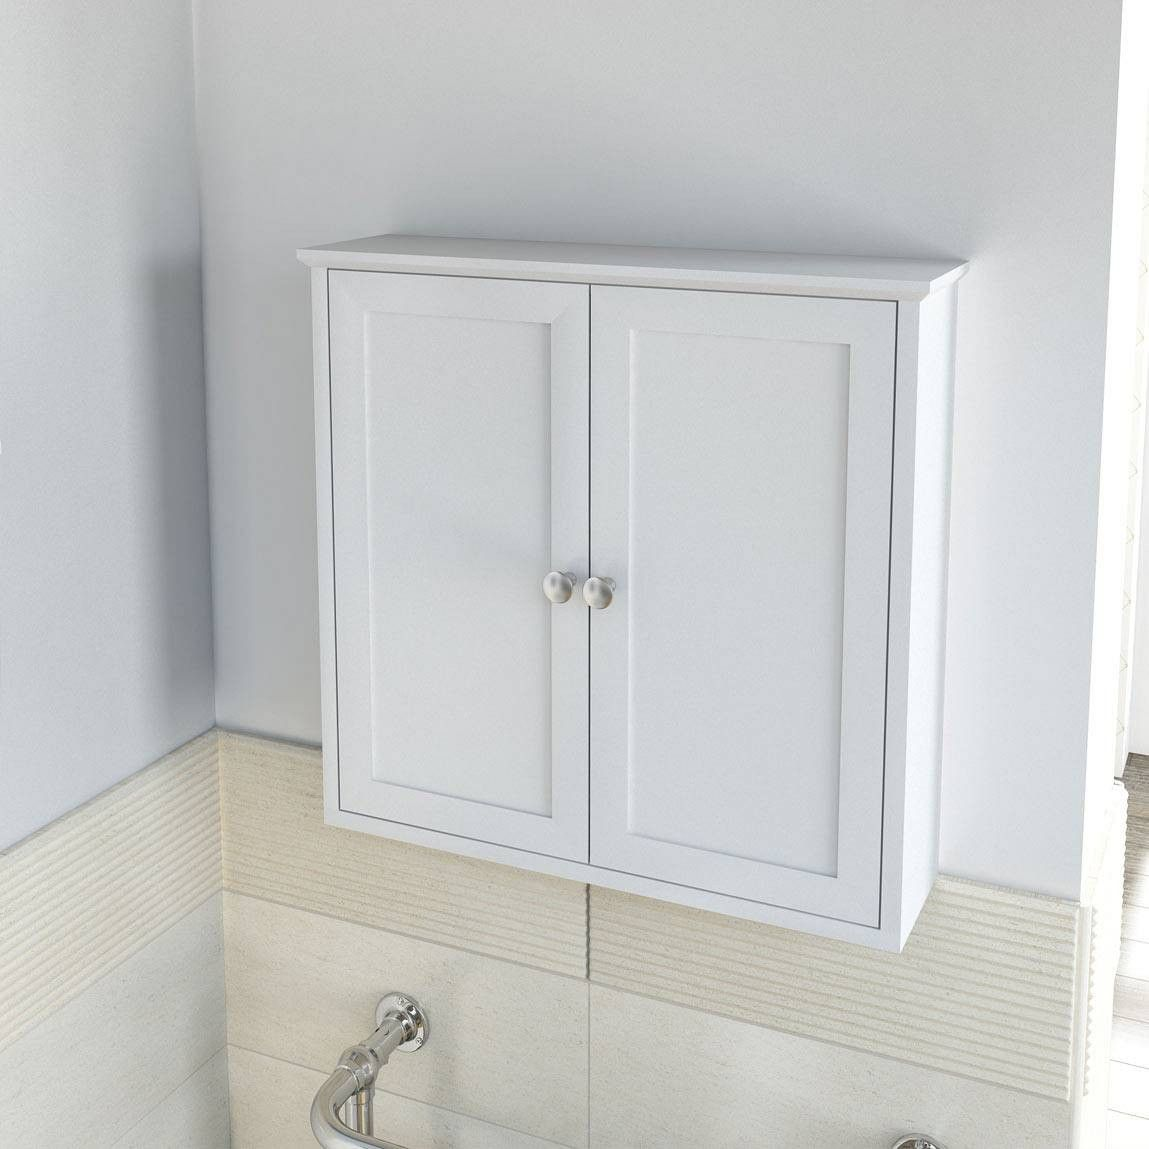 2019 Wall Mount Bathroom Cabinet - Best Interior Paint Colors Check ...